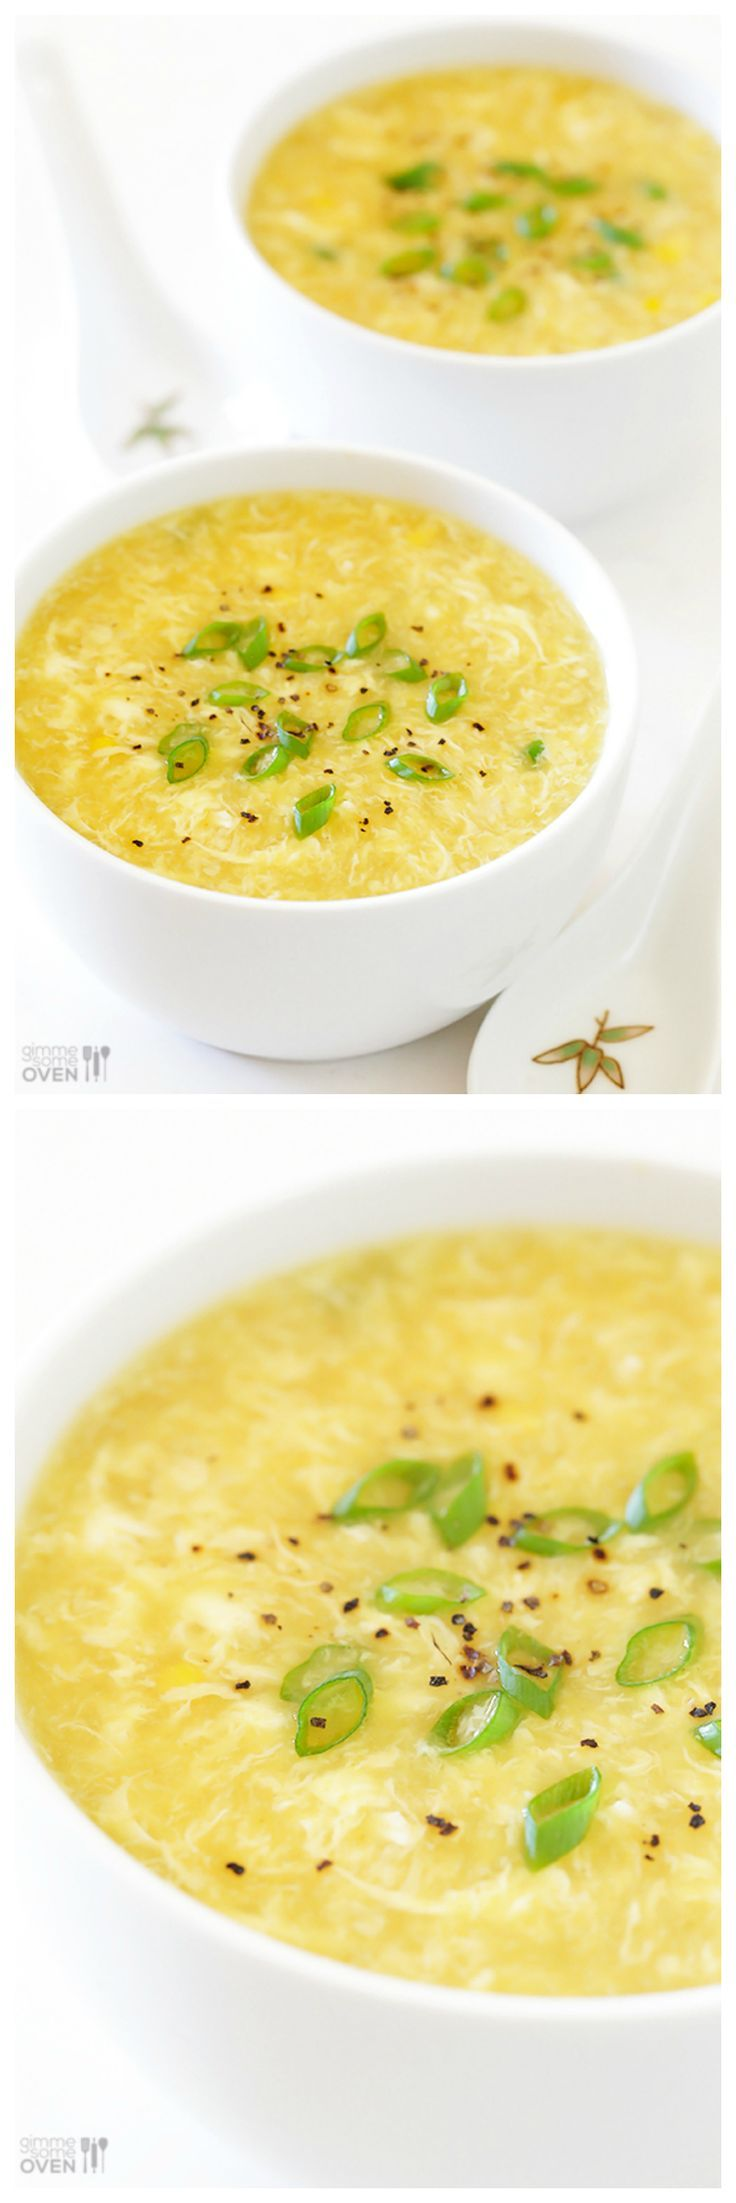 Egg Drop Soup -- super easy to make, and it tastes even better than the restaurant version! | gimmesomeoven.com #soup #recipe